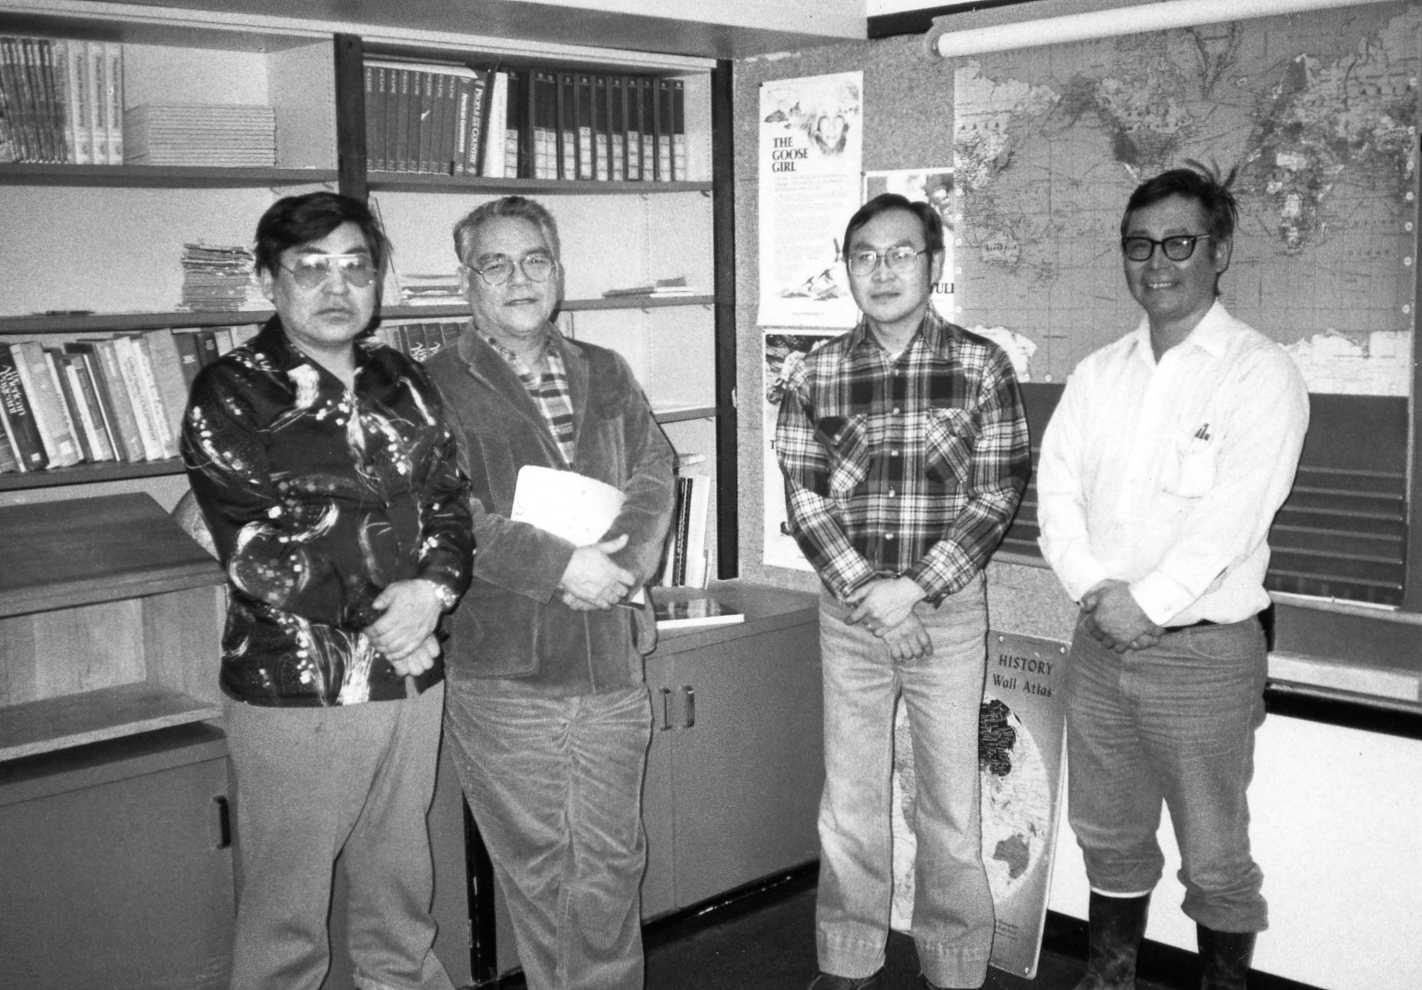 Photo of 1983 Calista board members